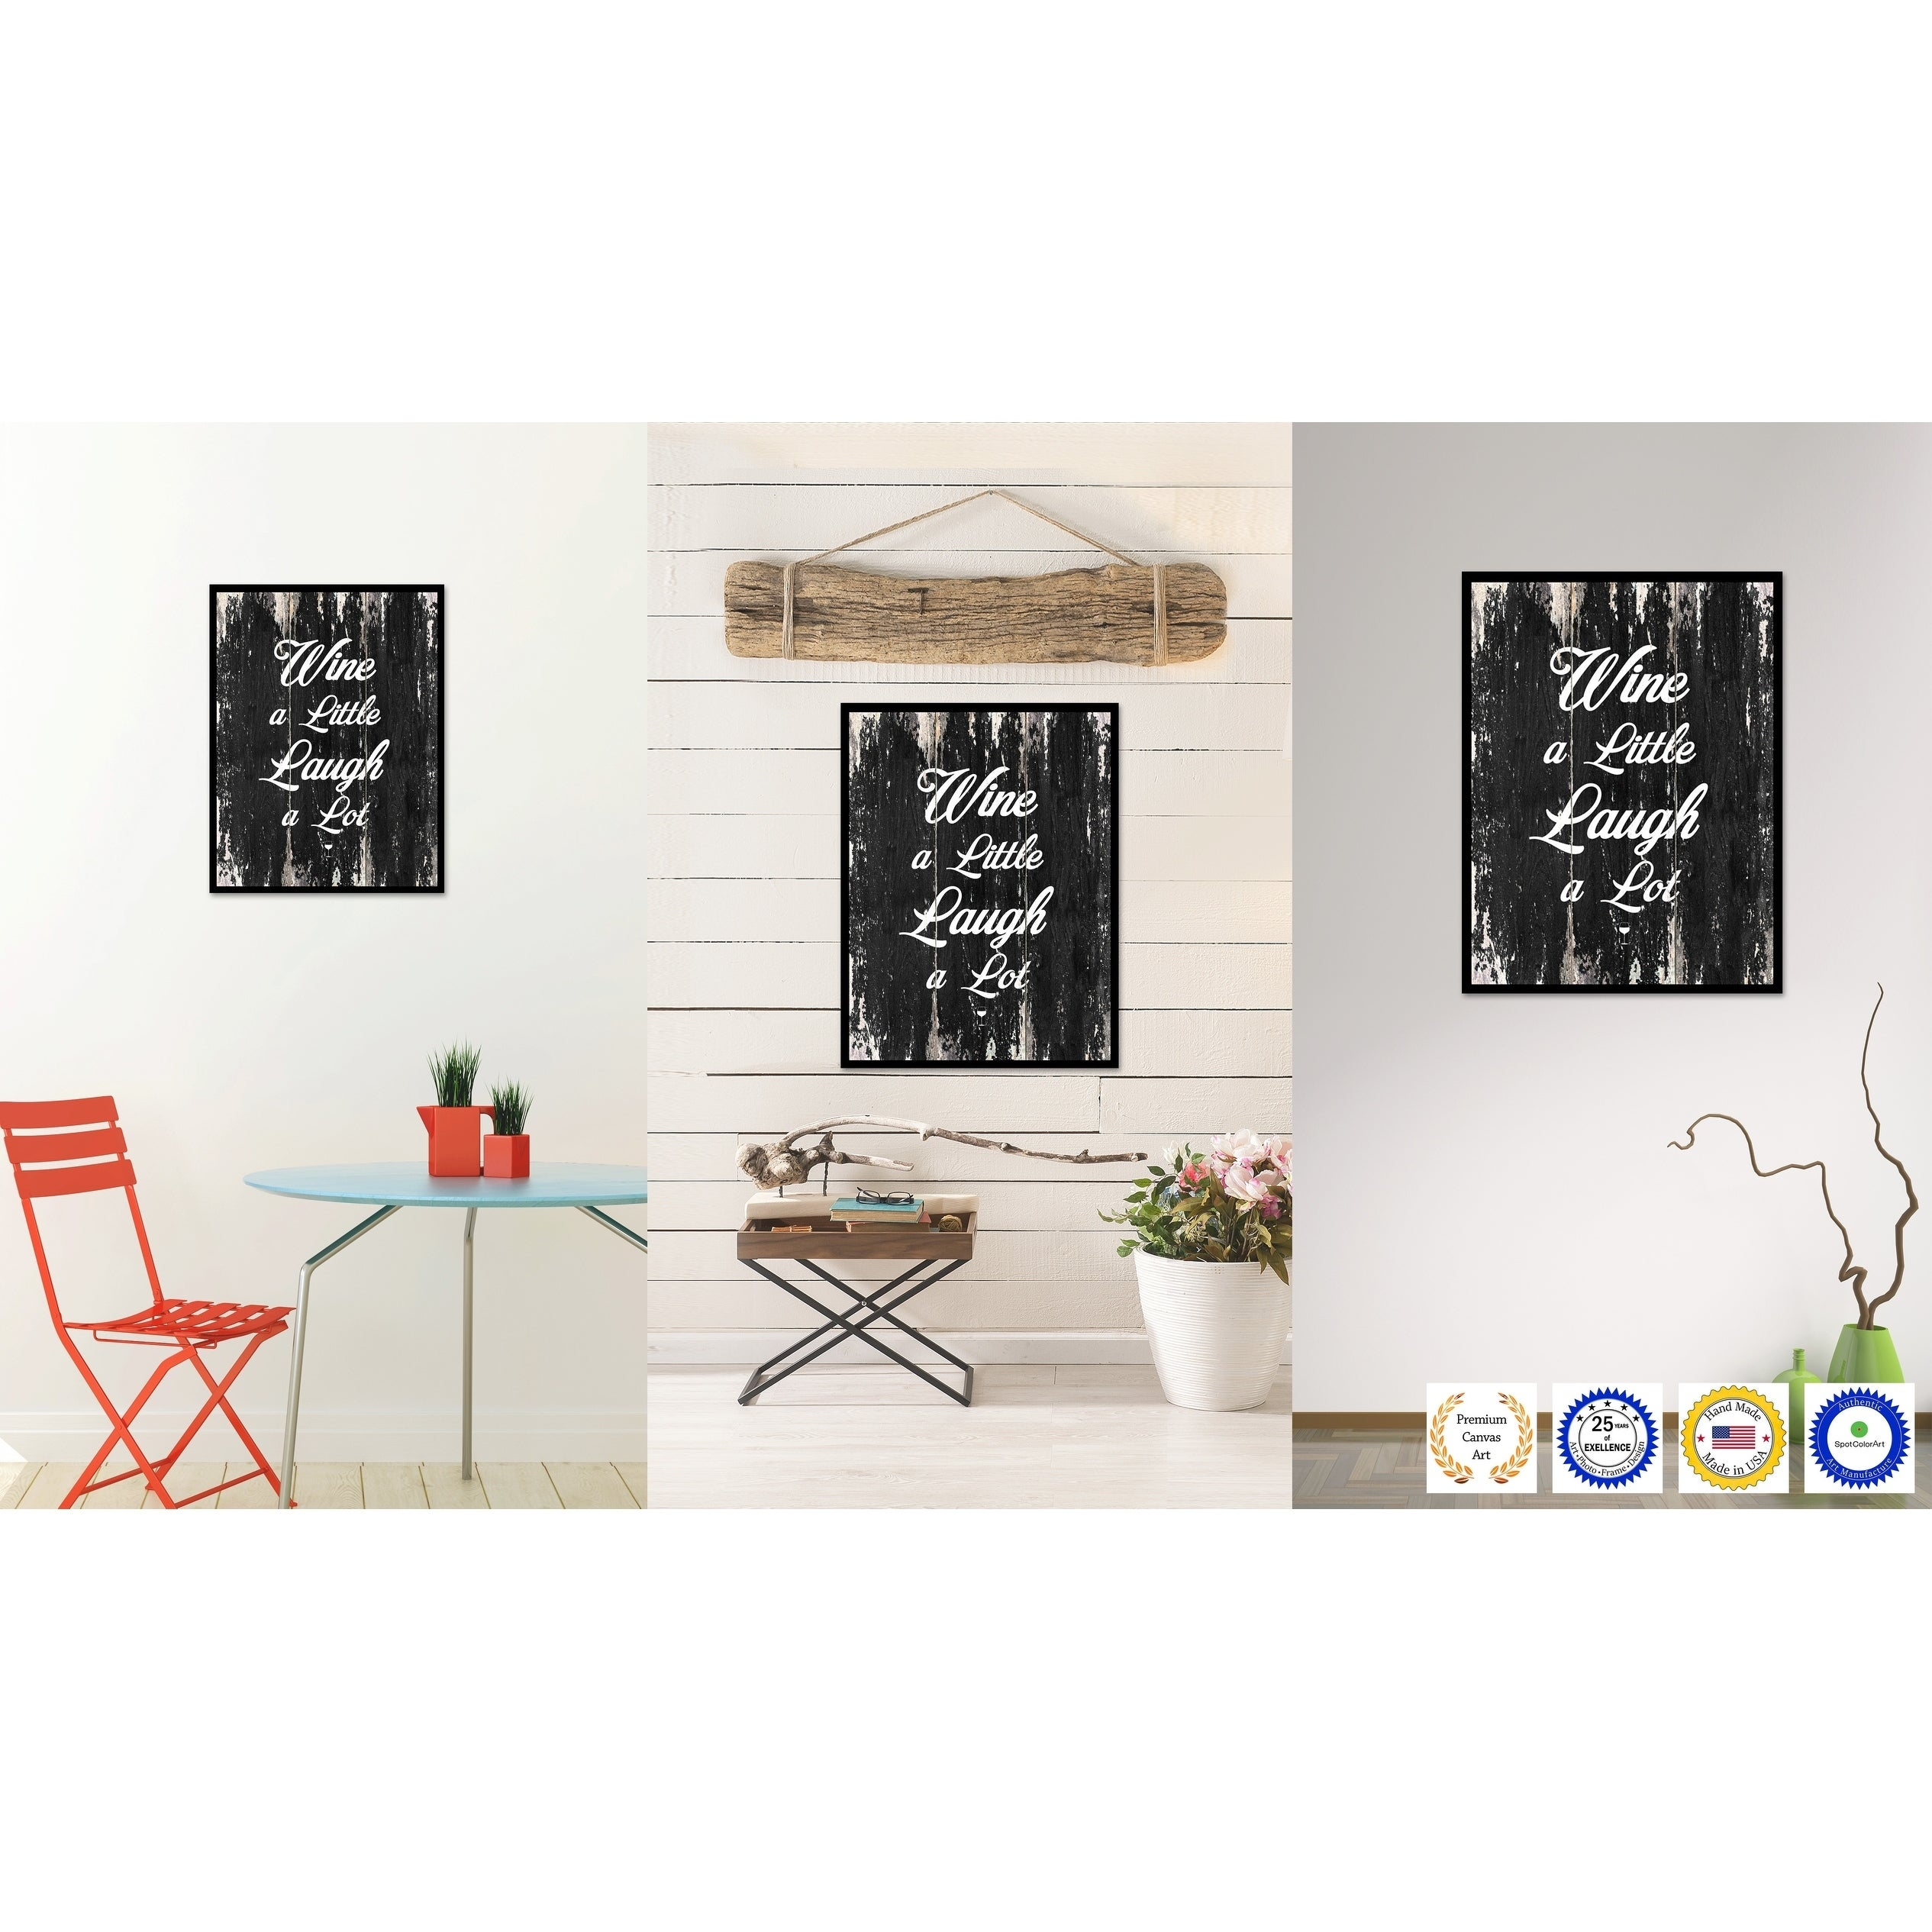 Shop Wine A Little Laugh A Lot Saying Canvas Print Picture Frame ...